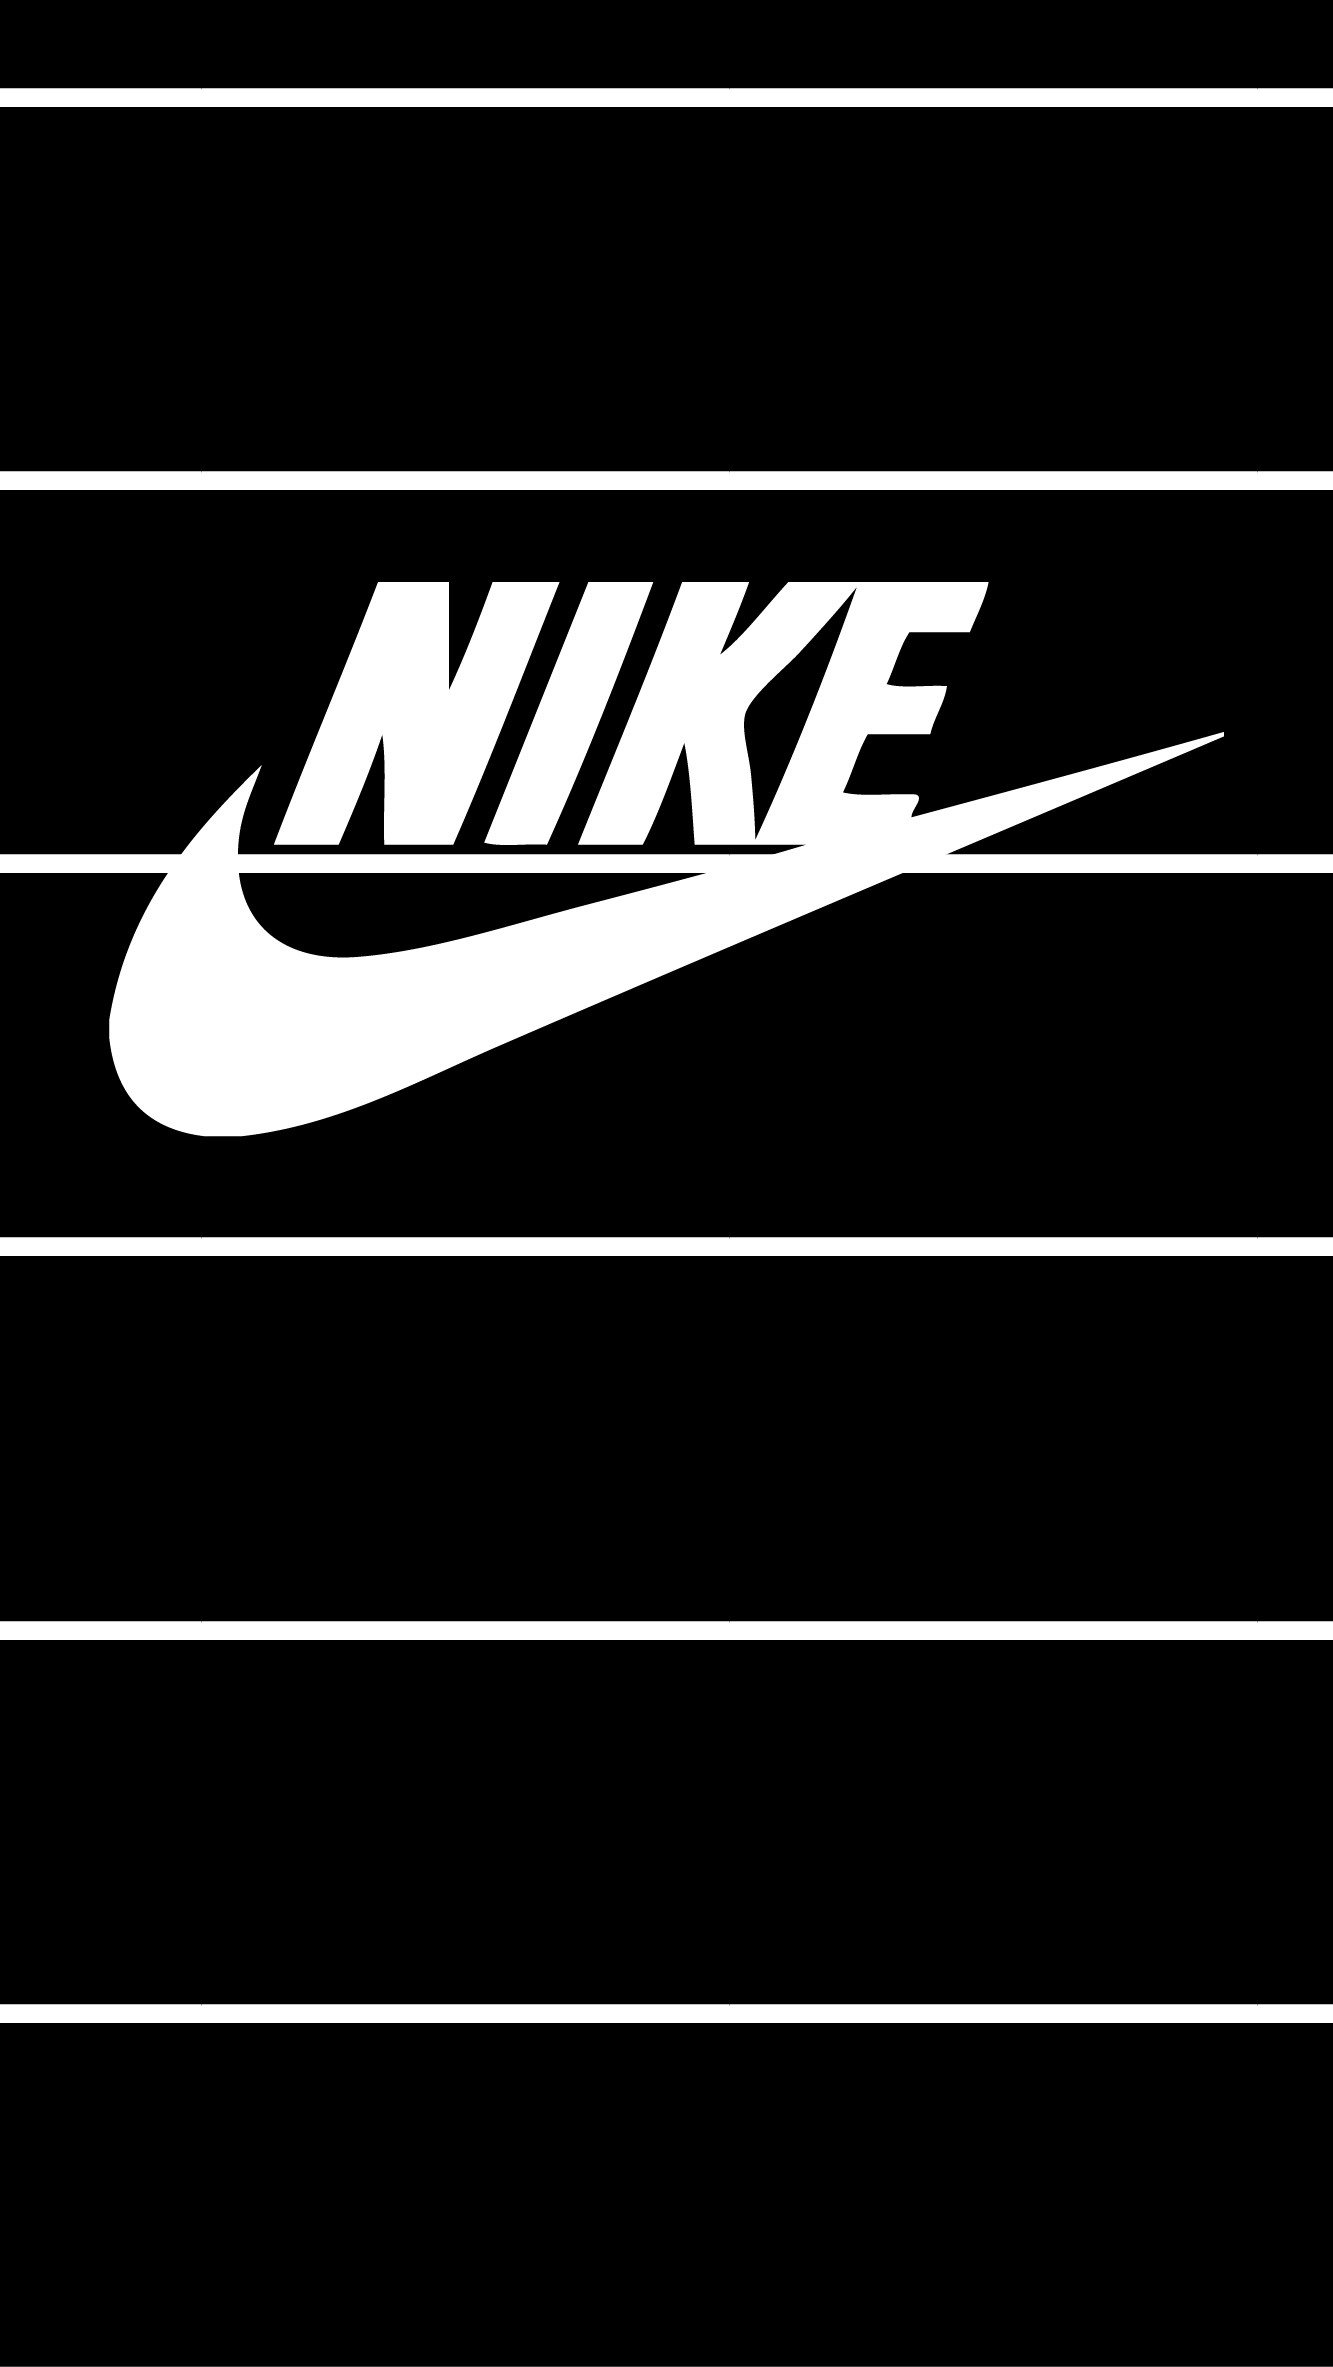 Nike Wallpaper For IPhone 79 Images